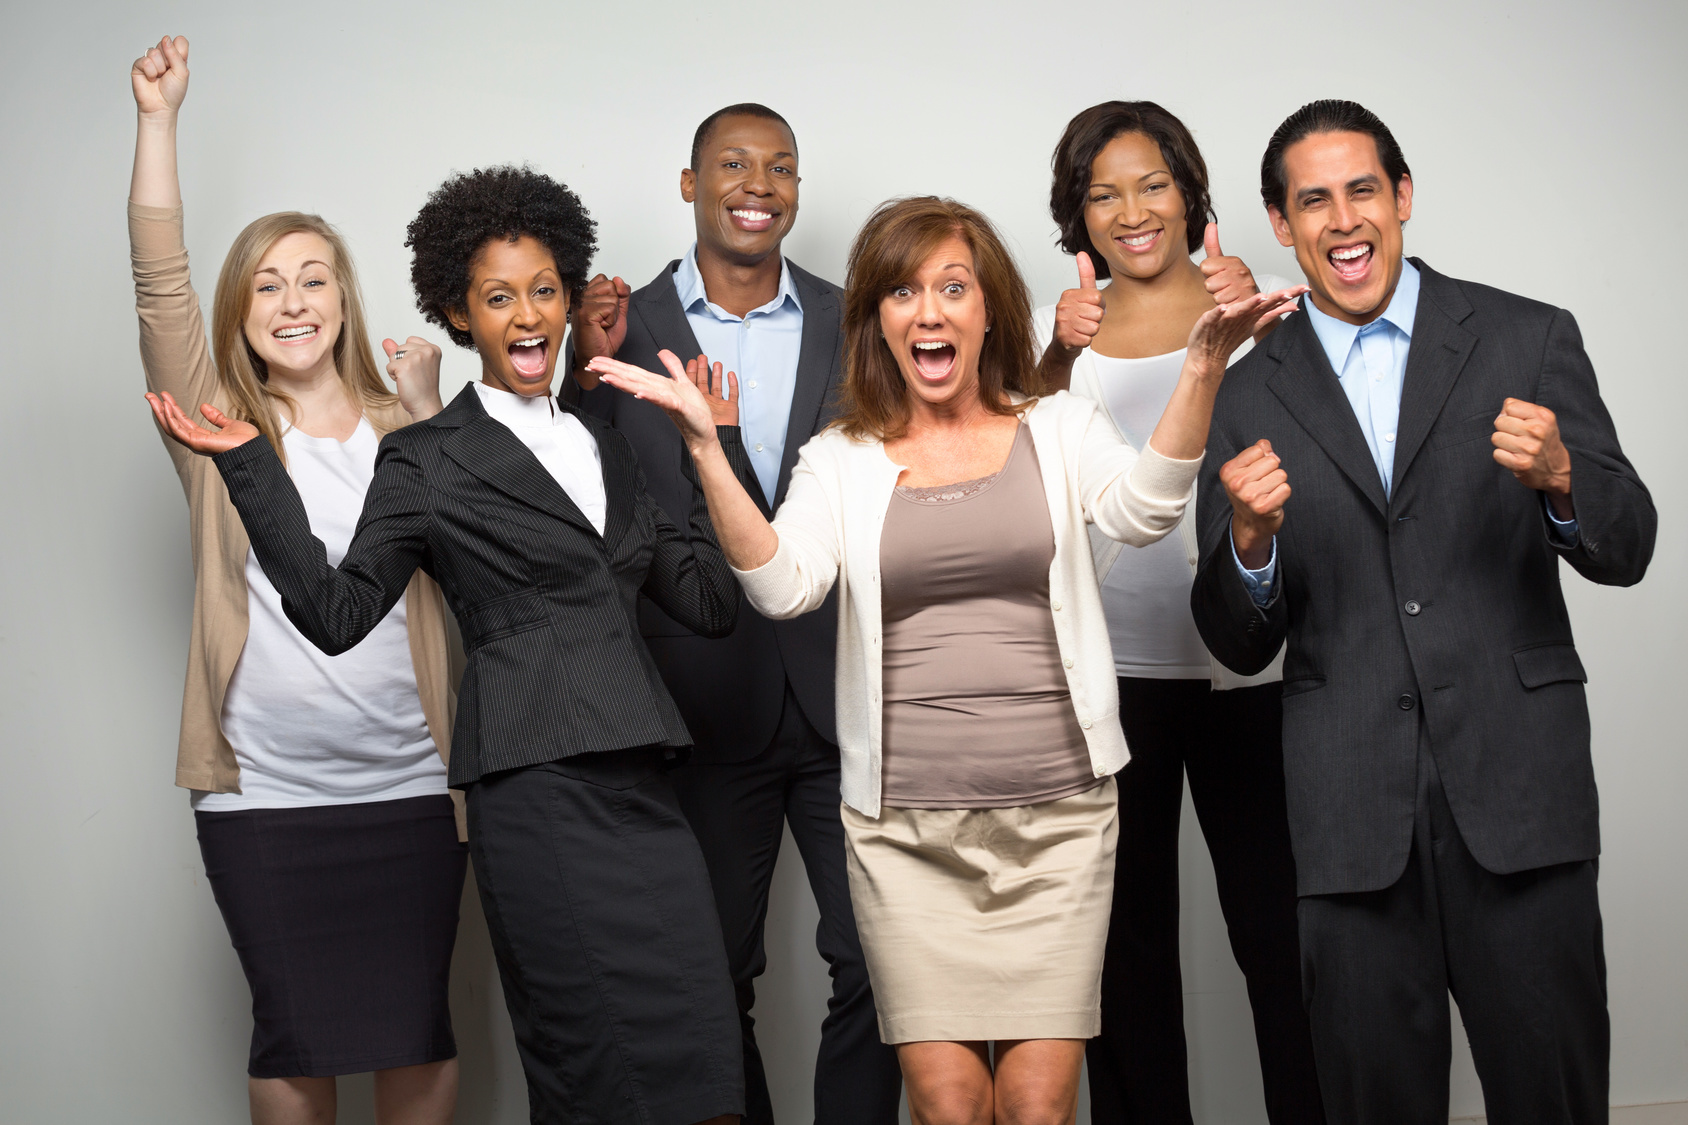 group of business people excited